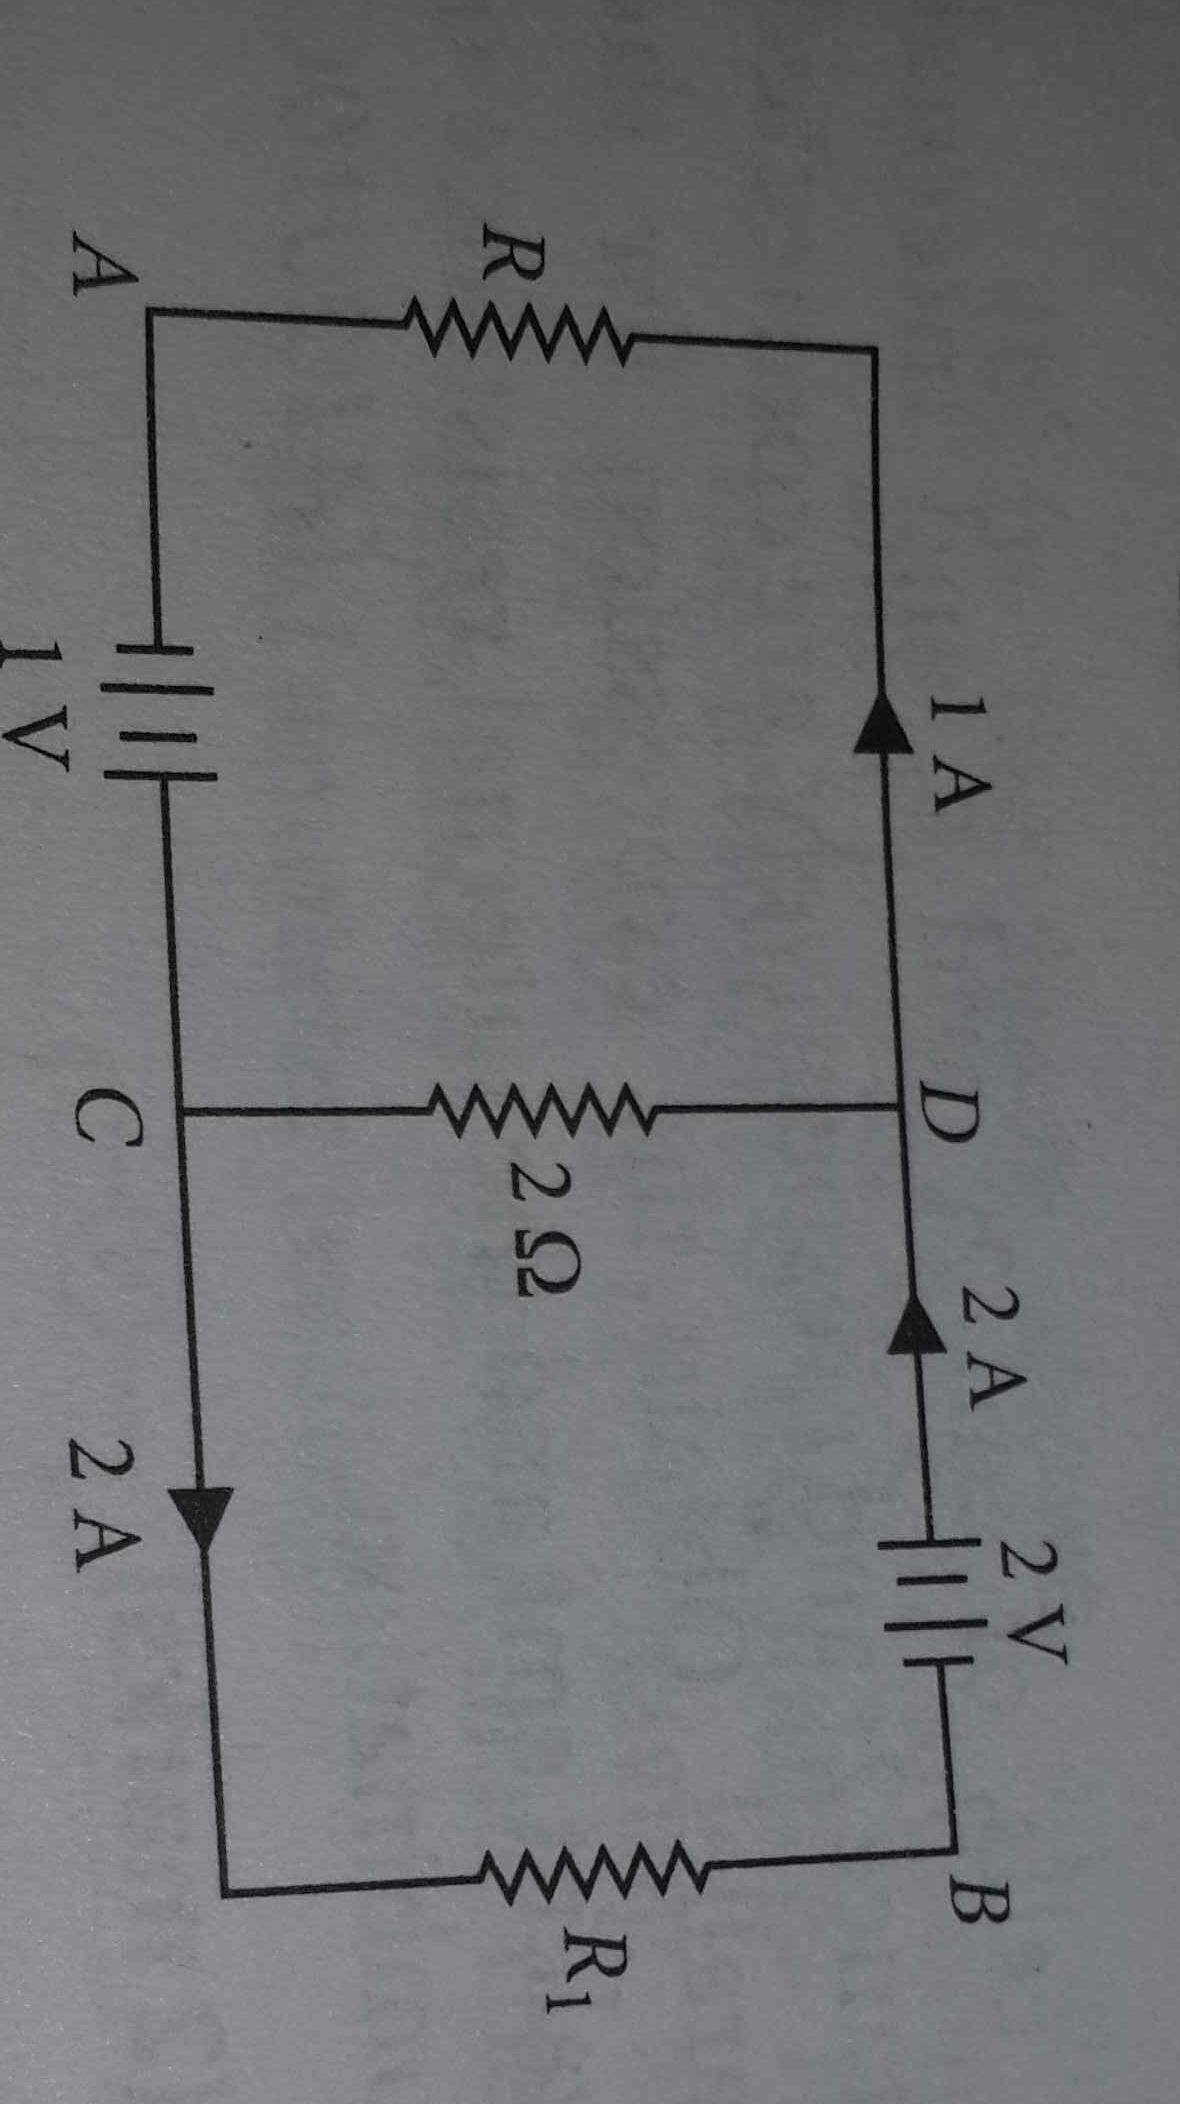 hight resolution of in the given circuit assuming point a to be at zero potential use kirchhoff rule to determine the potential at b